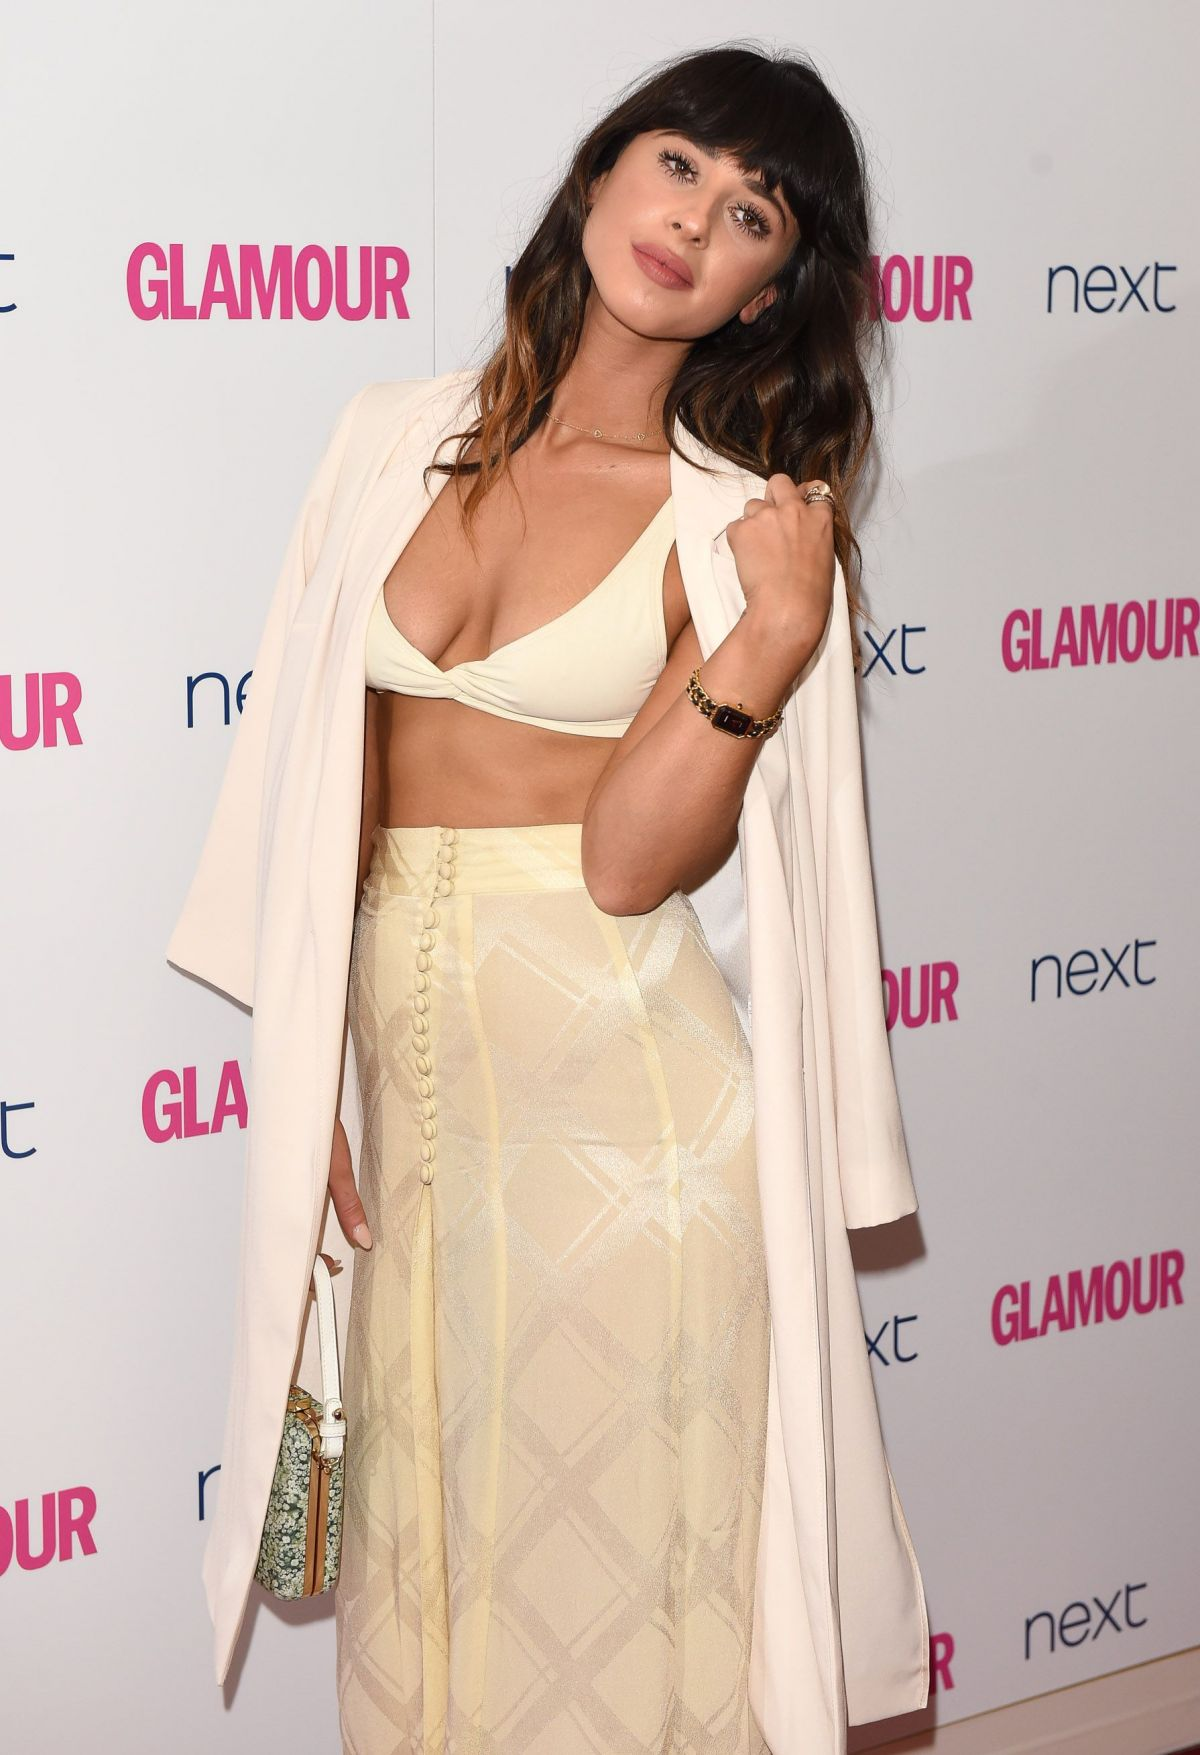 LOUISA ROSA ALLEN at Glamour Women of the Year Awards in London